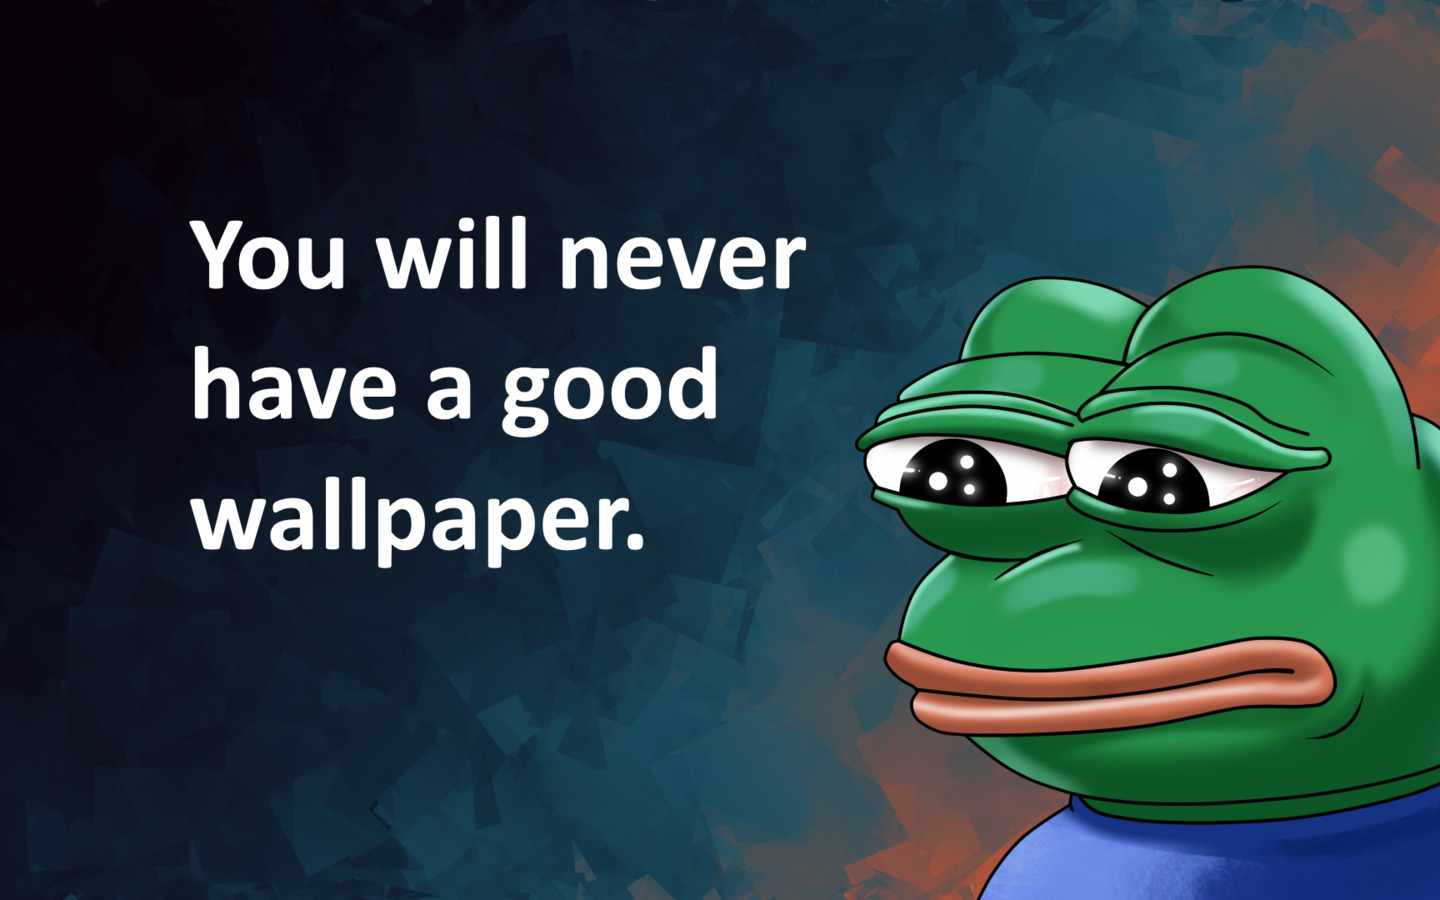 Pepe The Frog Cute Wallpaper 1440x900 Real Story 1440x900 Resolution Hd 4k Wallpapers